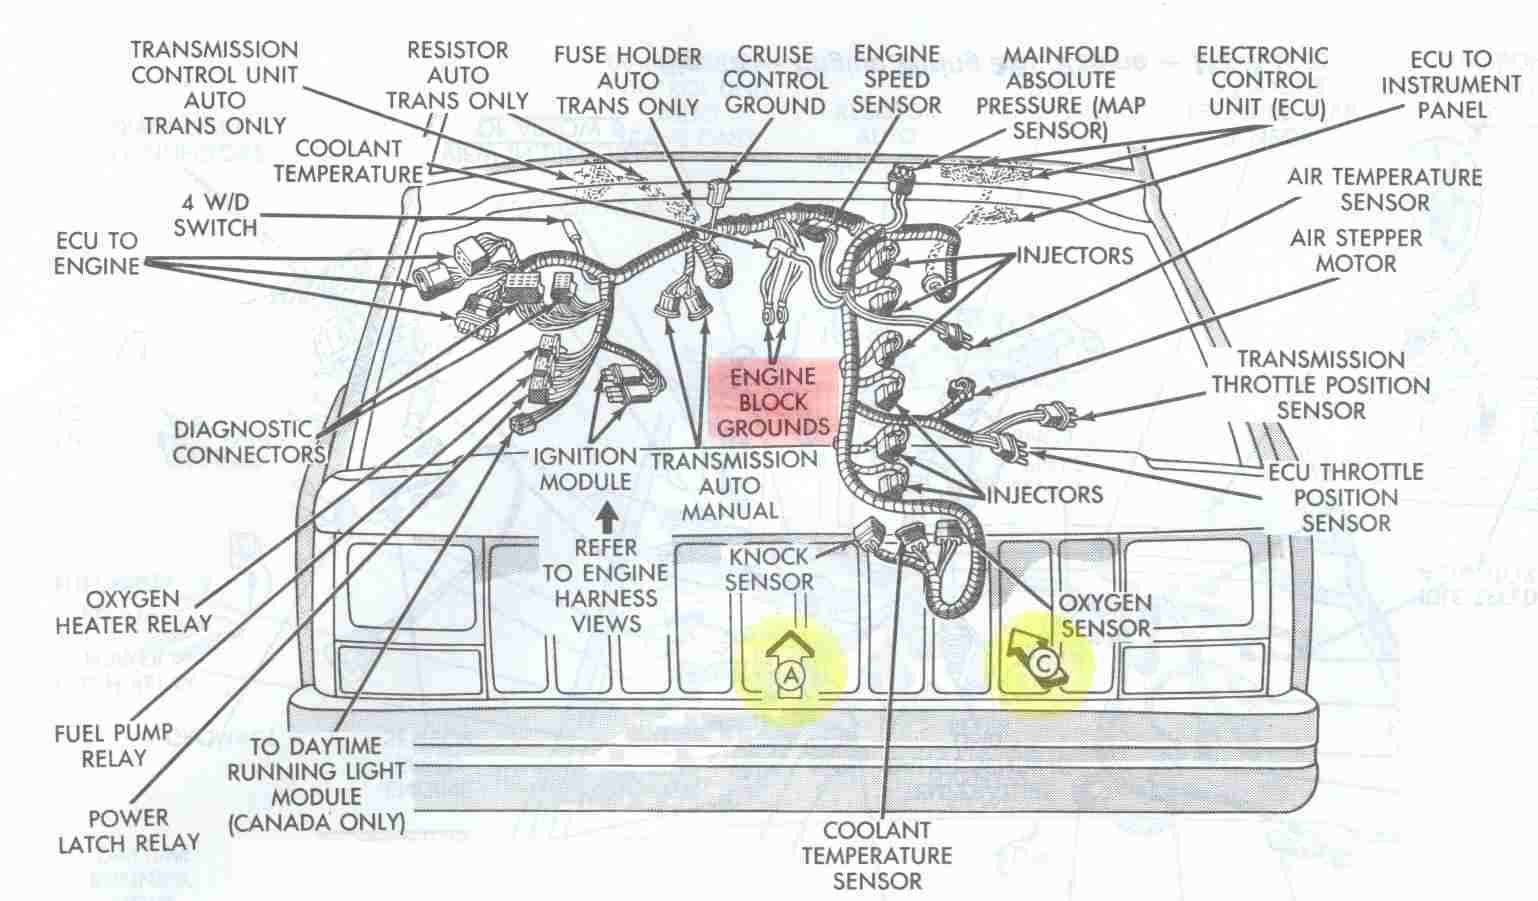 ab0134a7d9e021431187af597eb4aeca engine bay schematic showing major electrical ground points for wiring diagram 1997 jeep grand cherokee at et-consult.org